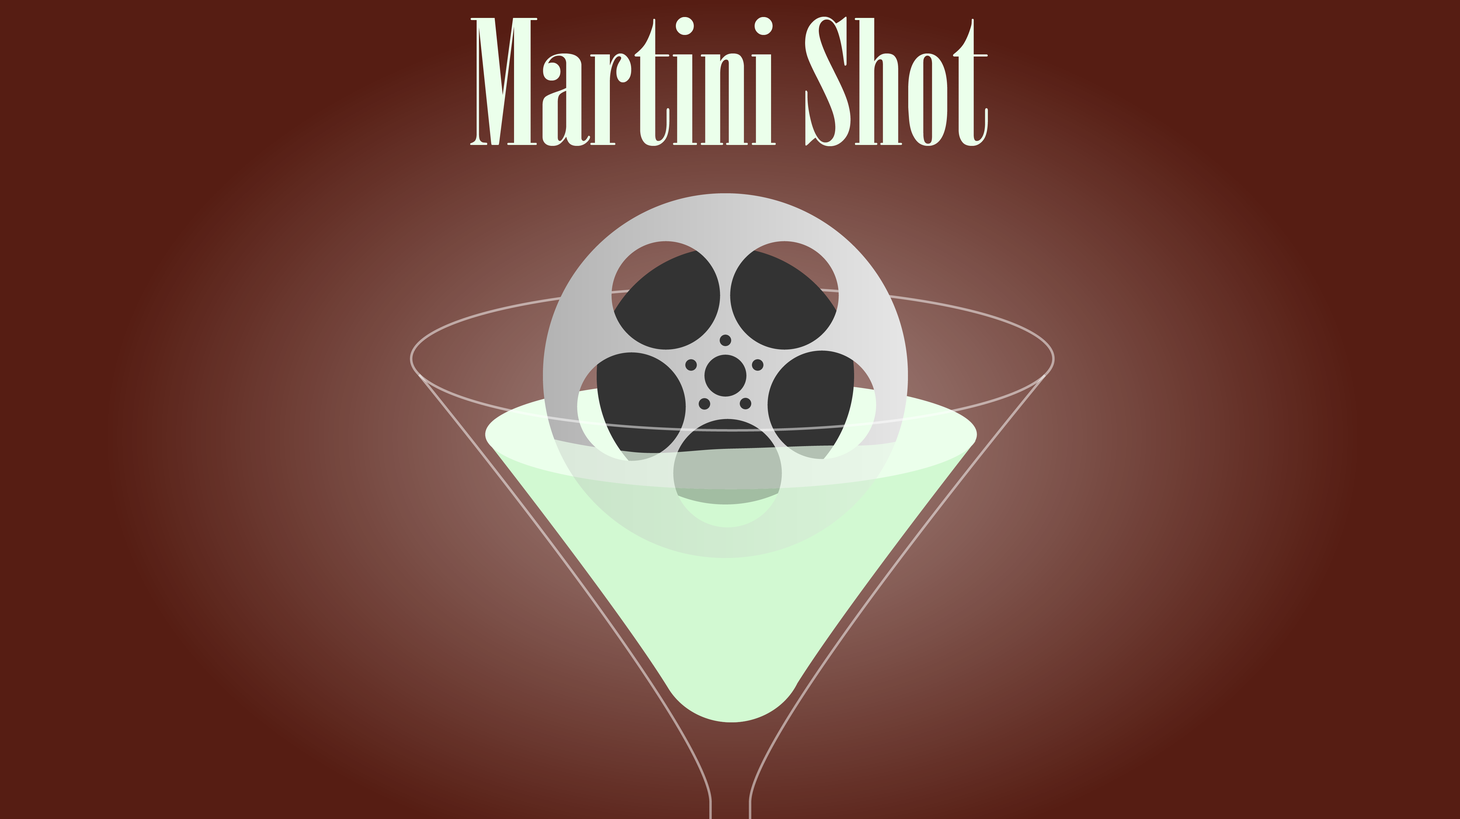 This is Rob Long, and on today's Martini Shot I talk about the two ways to respond to a knock on the door. They're here, and they're here. Guess which one I always do?